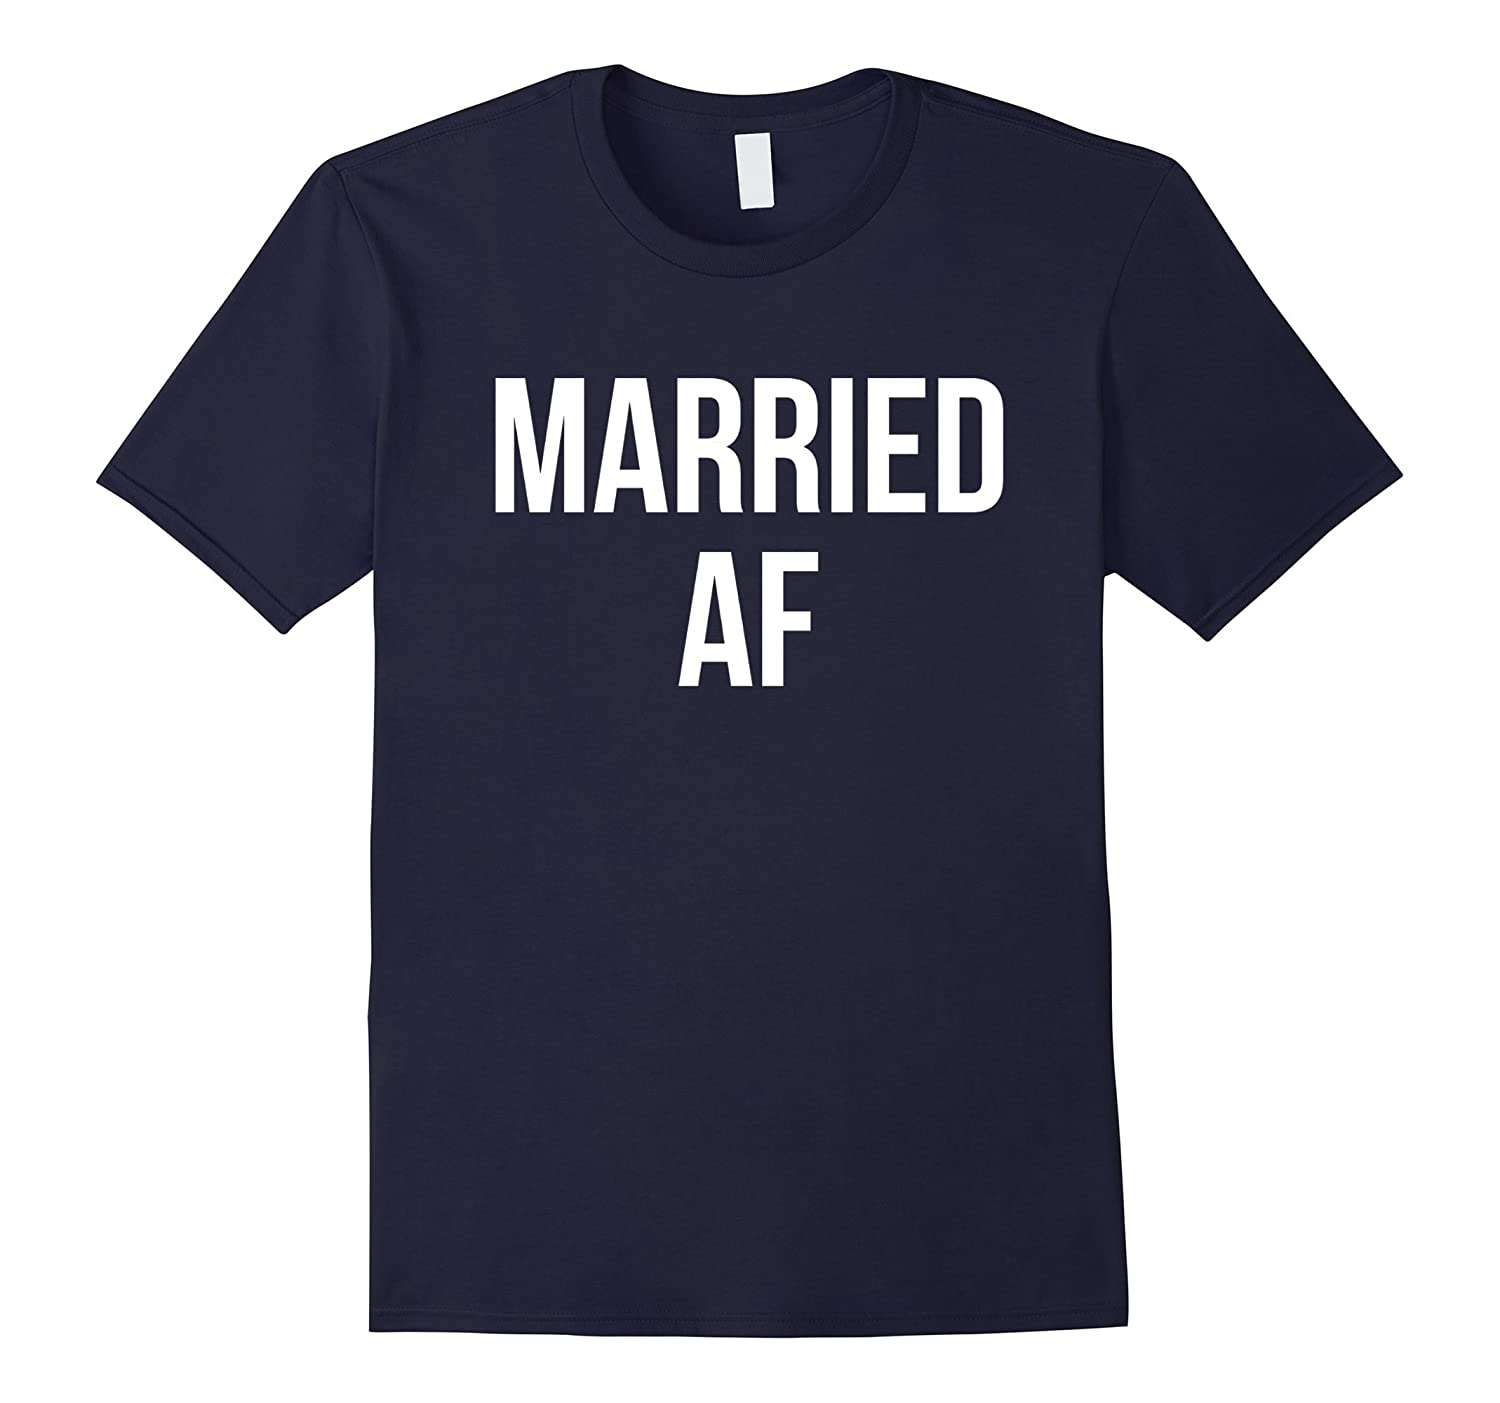 Married AF Funny T-Shirt For New Married Couple.-BN